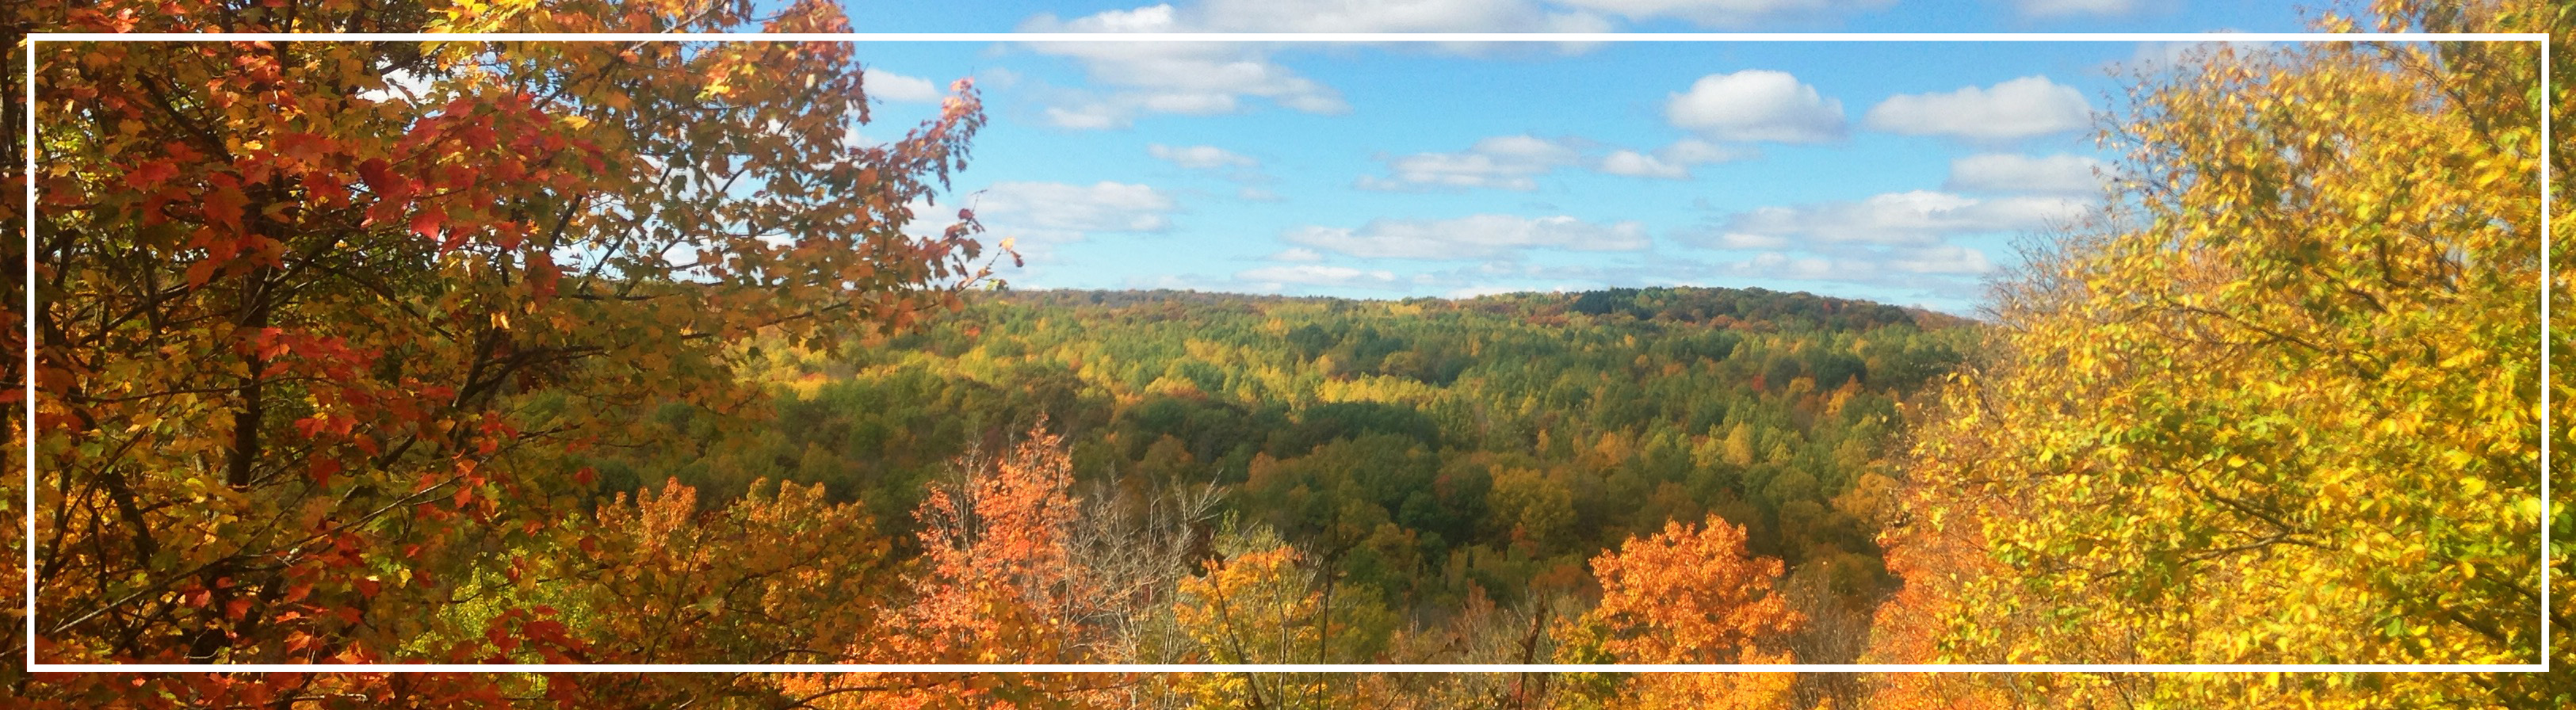 landscape image - deciduous trees fall colors